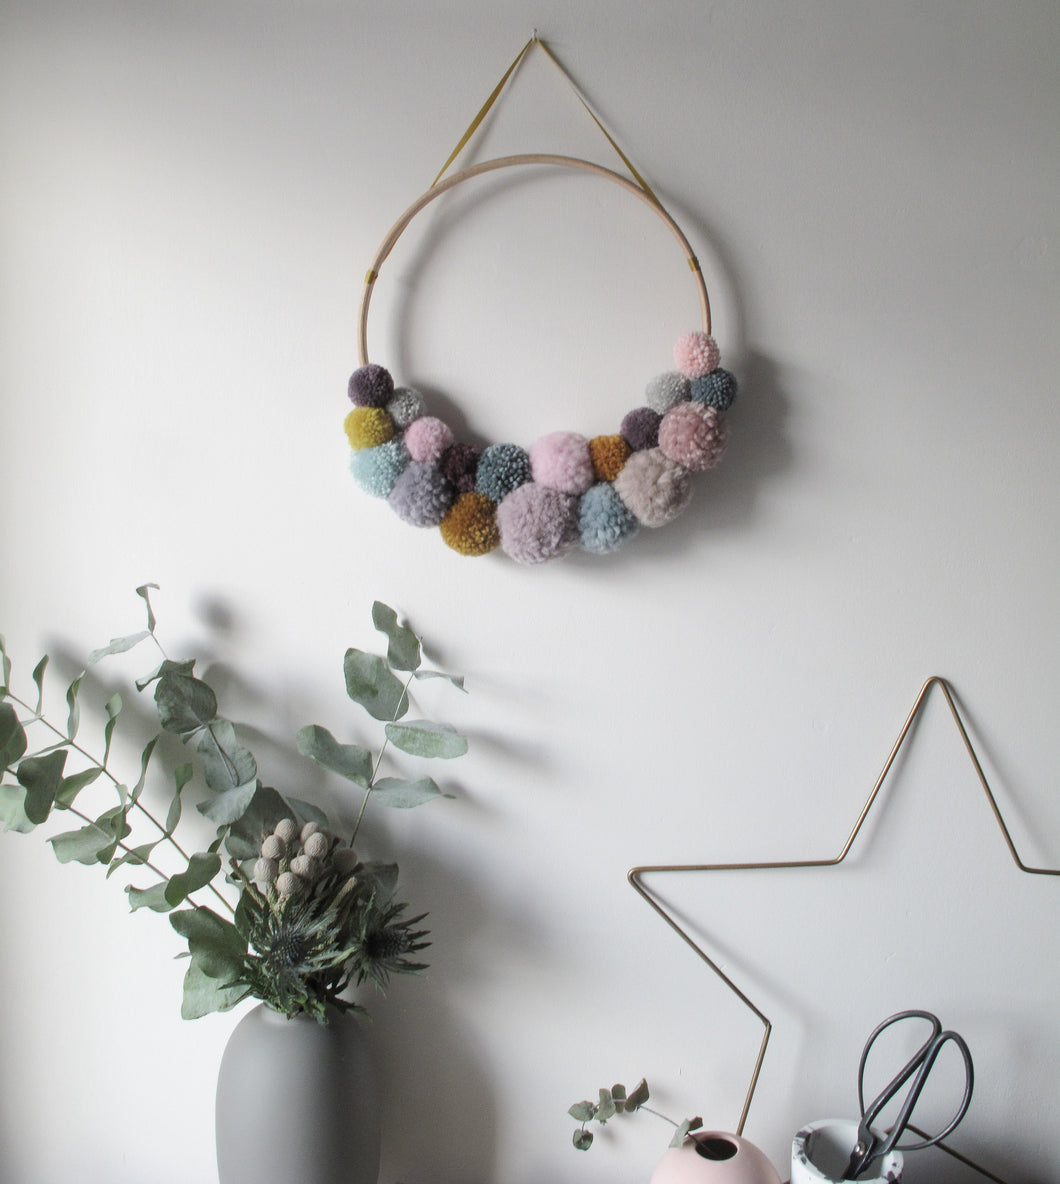 Pom Pom Wreath in Multi Colour Mix